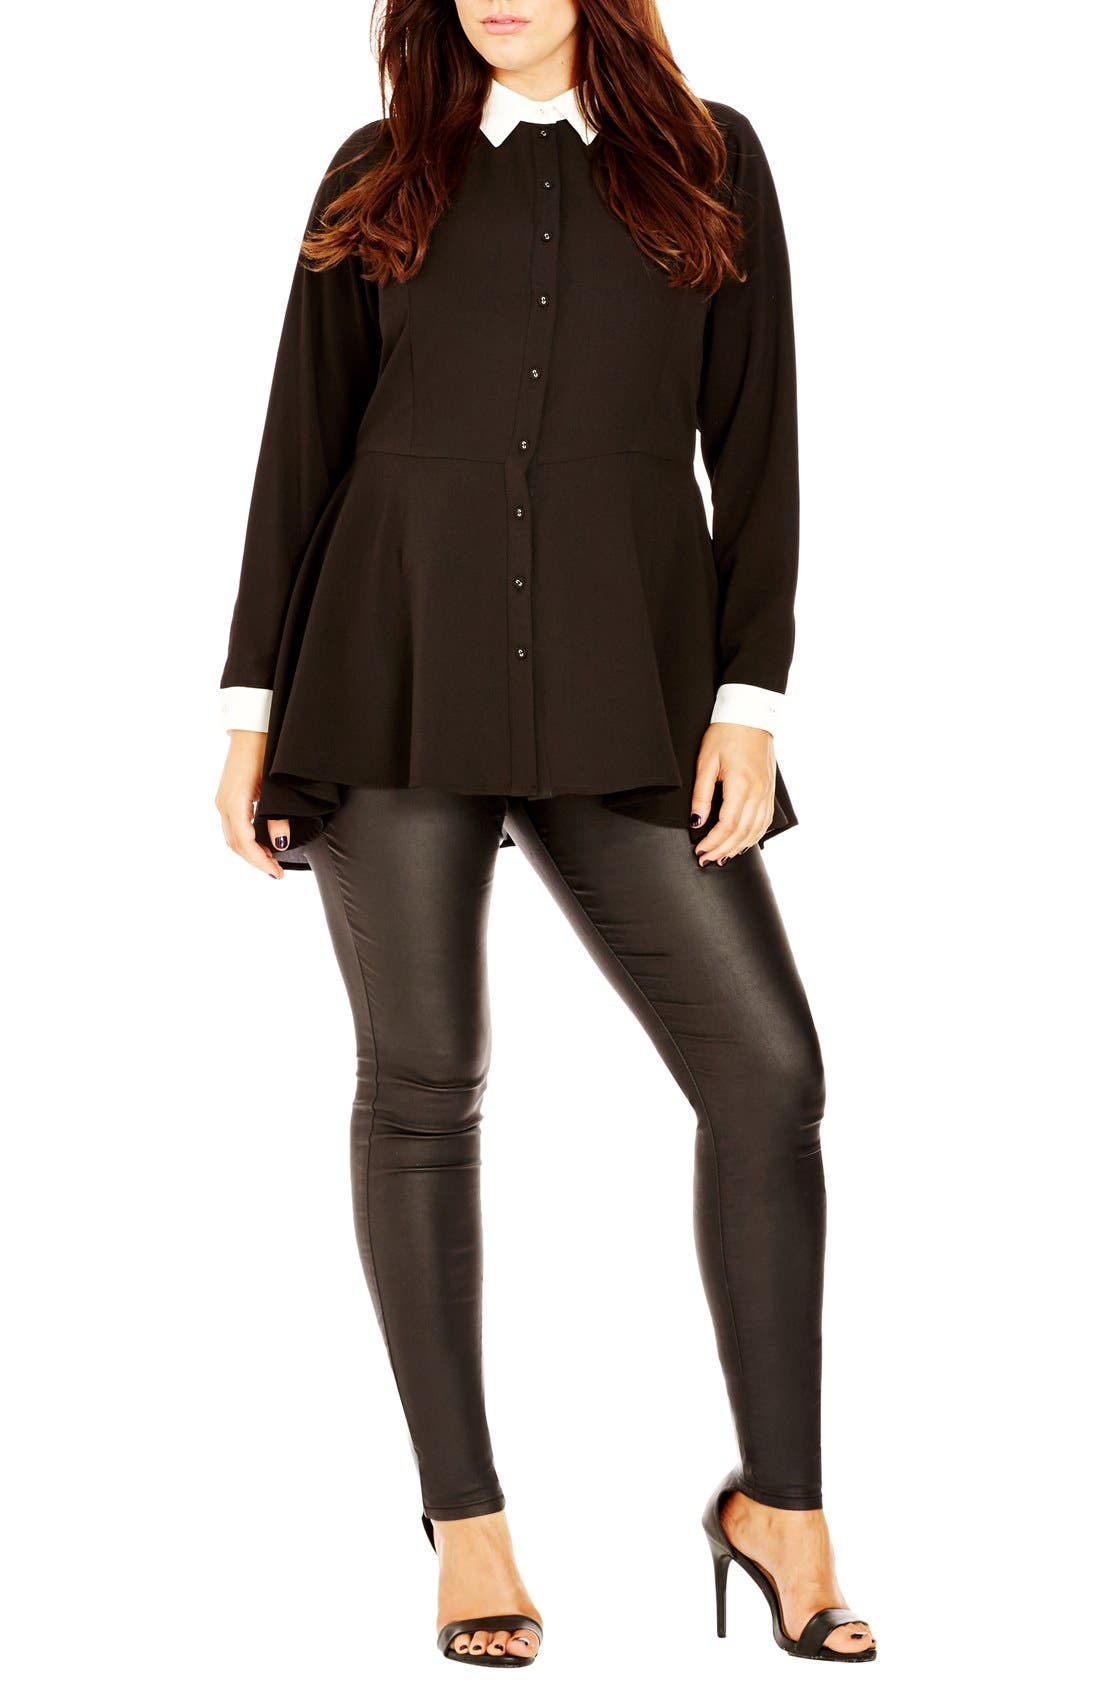 Main Image - City Chic Contrast Trim Fit & Flare Shirt (Plus Size)